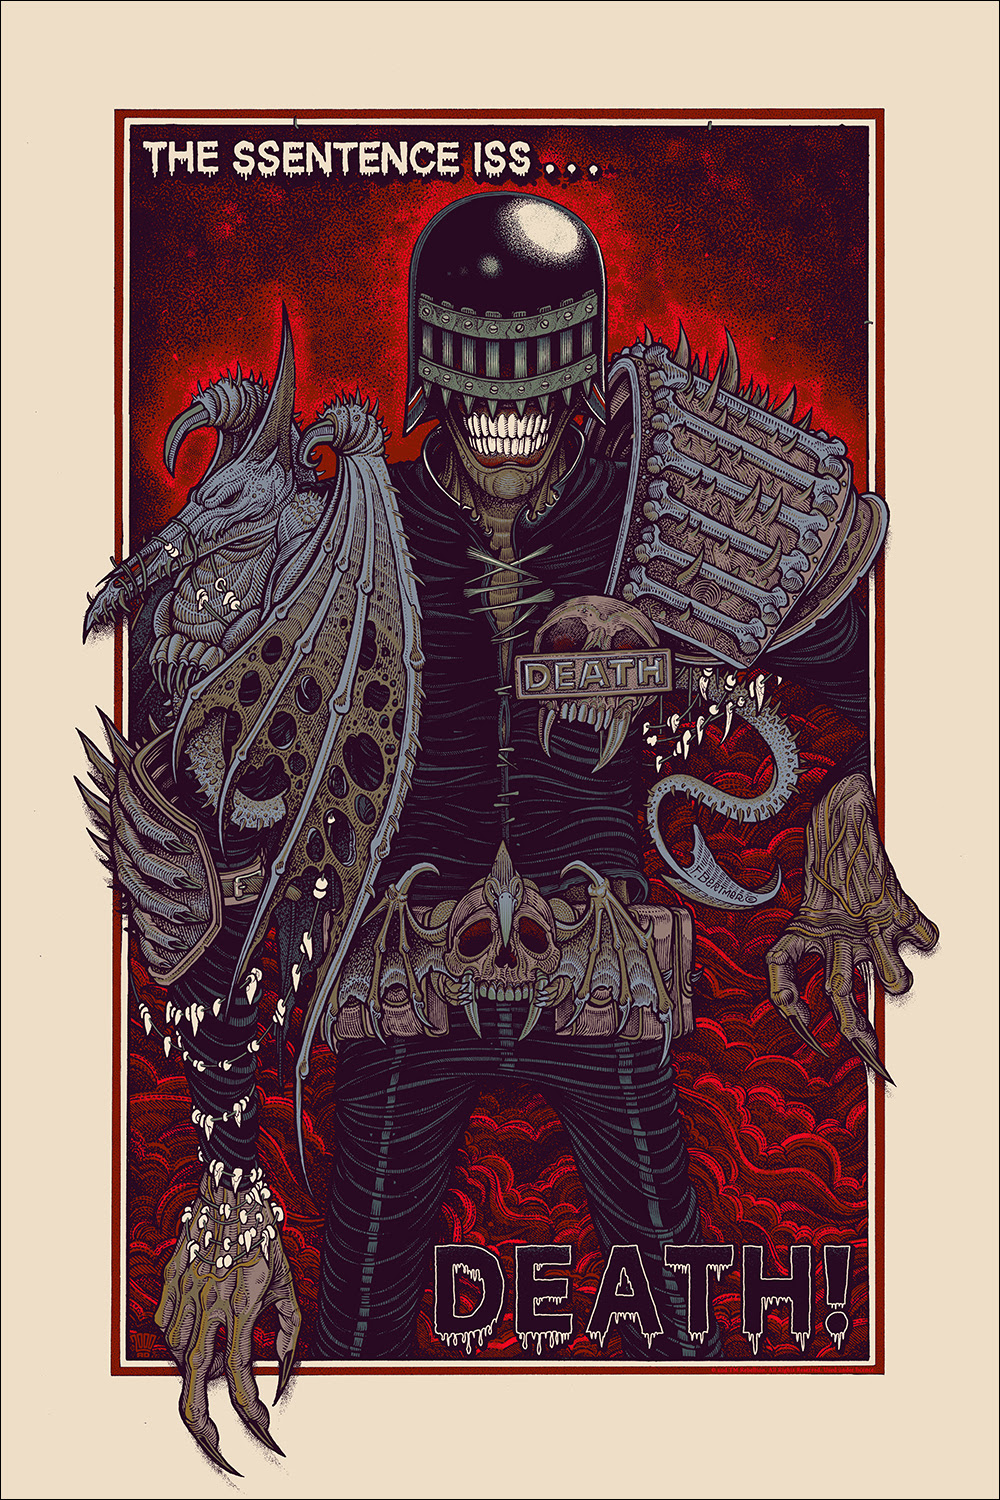 "Judge Death (Variant) by Florian Bertmer. Premiered at Thought Bubble UK. 24""x36"" screen print. Hand numbered. Edition of 125. Printed by D&L Screenprinting. $65"